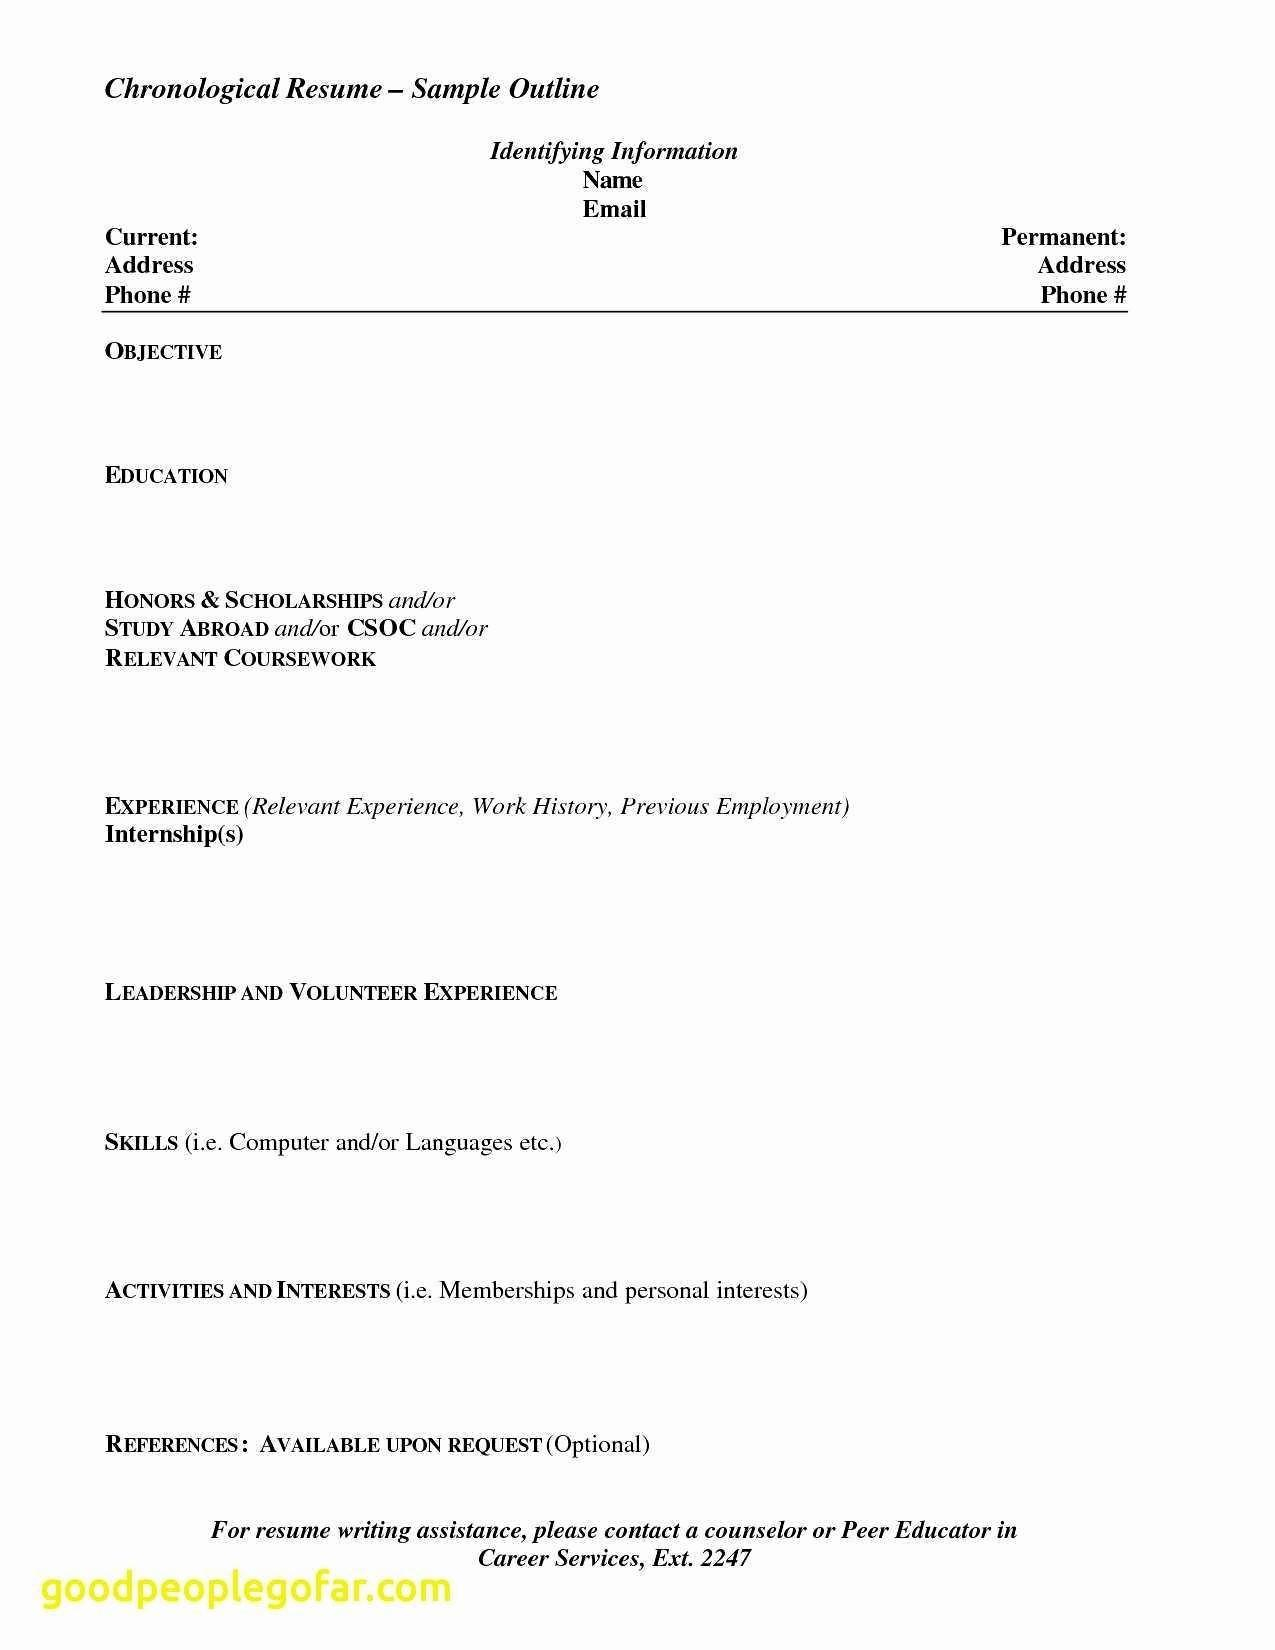 Medical Biller Resume Template - Sample Resume for Experienced Banking Professional Luxury Medical